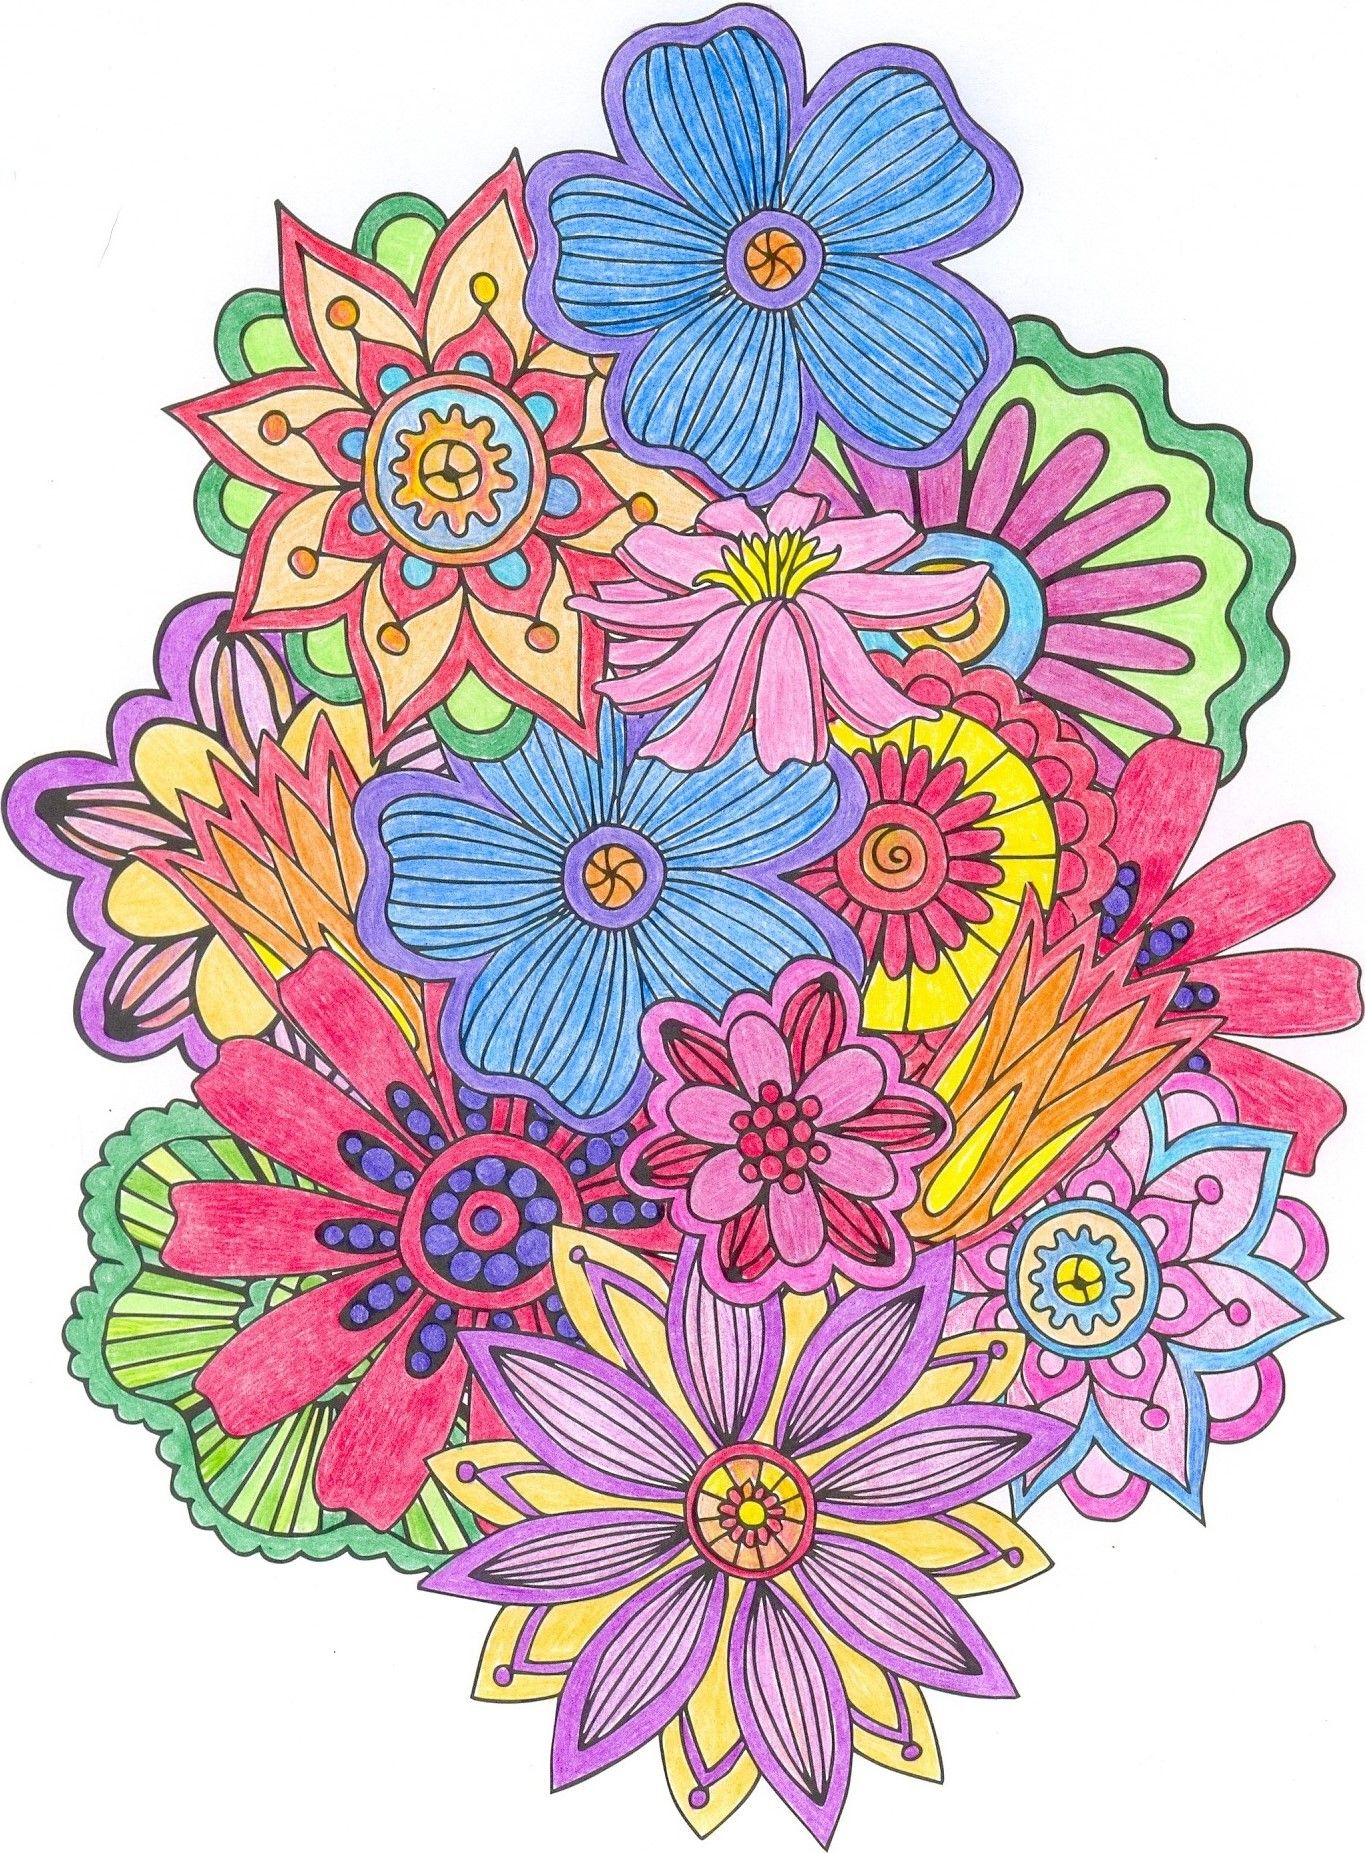 Colorama Coloring Book Commercial Fresh Colorama Coloring Pages Coloring Home Mandala Coloring Pages Coloring Pages Cinderella Coloring Pages